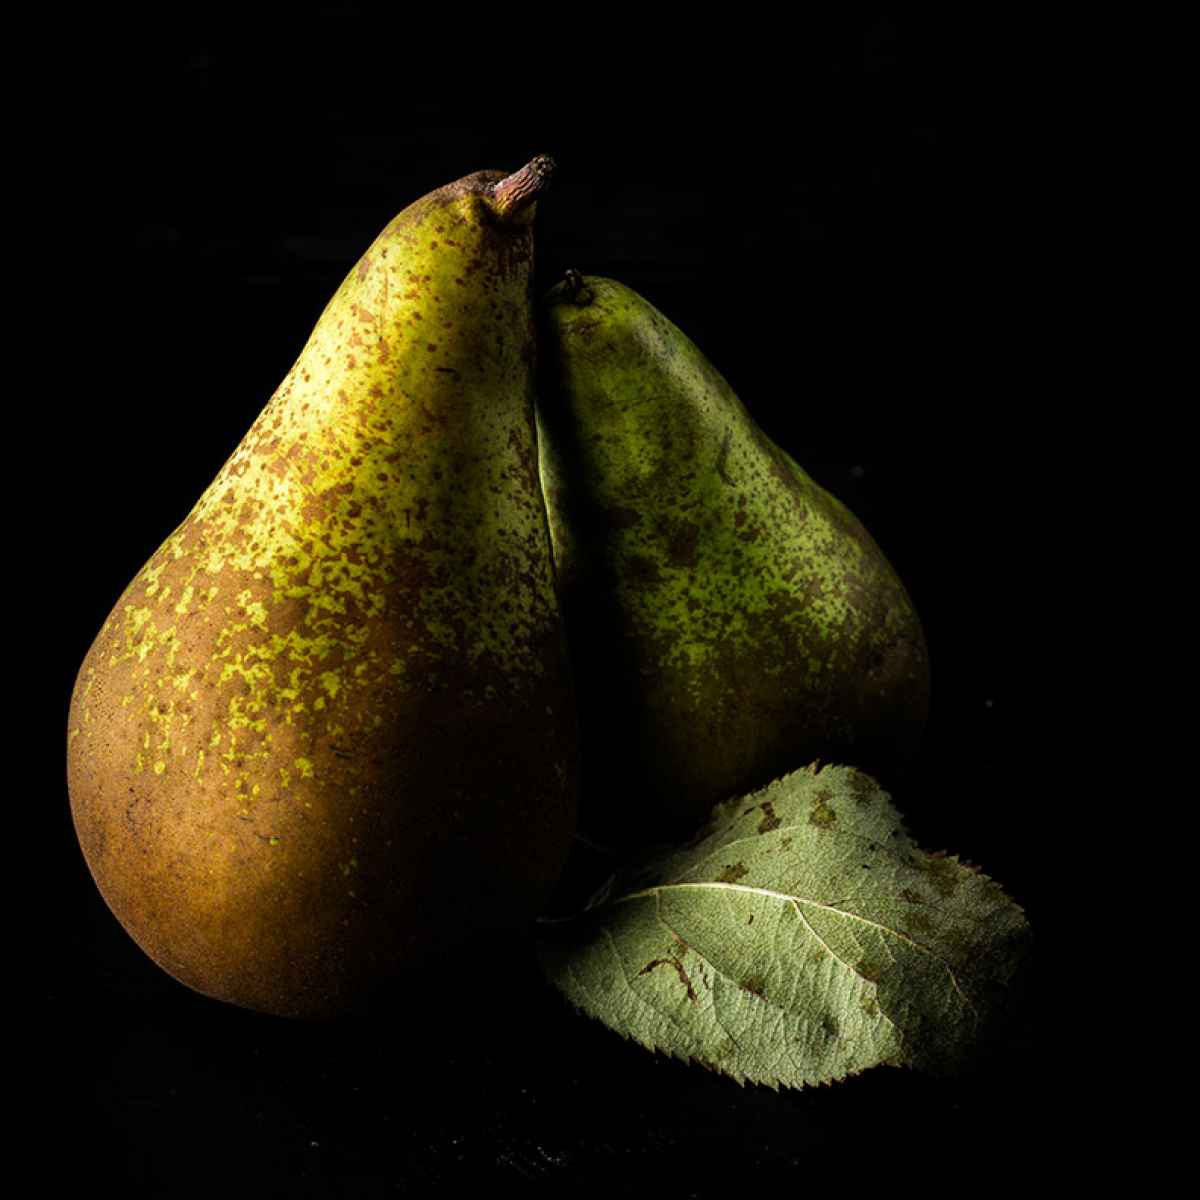 photographe nature morte poires